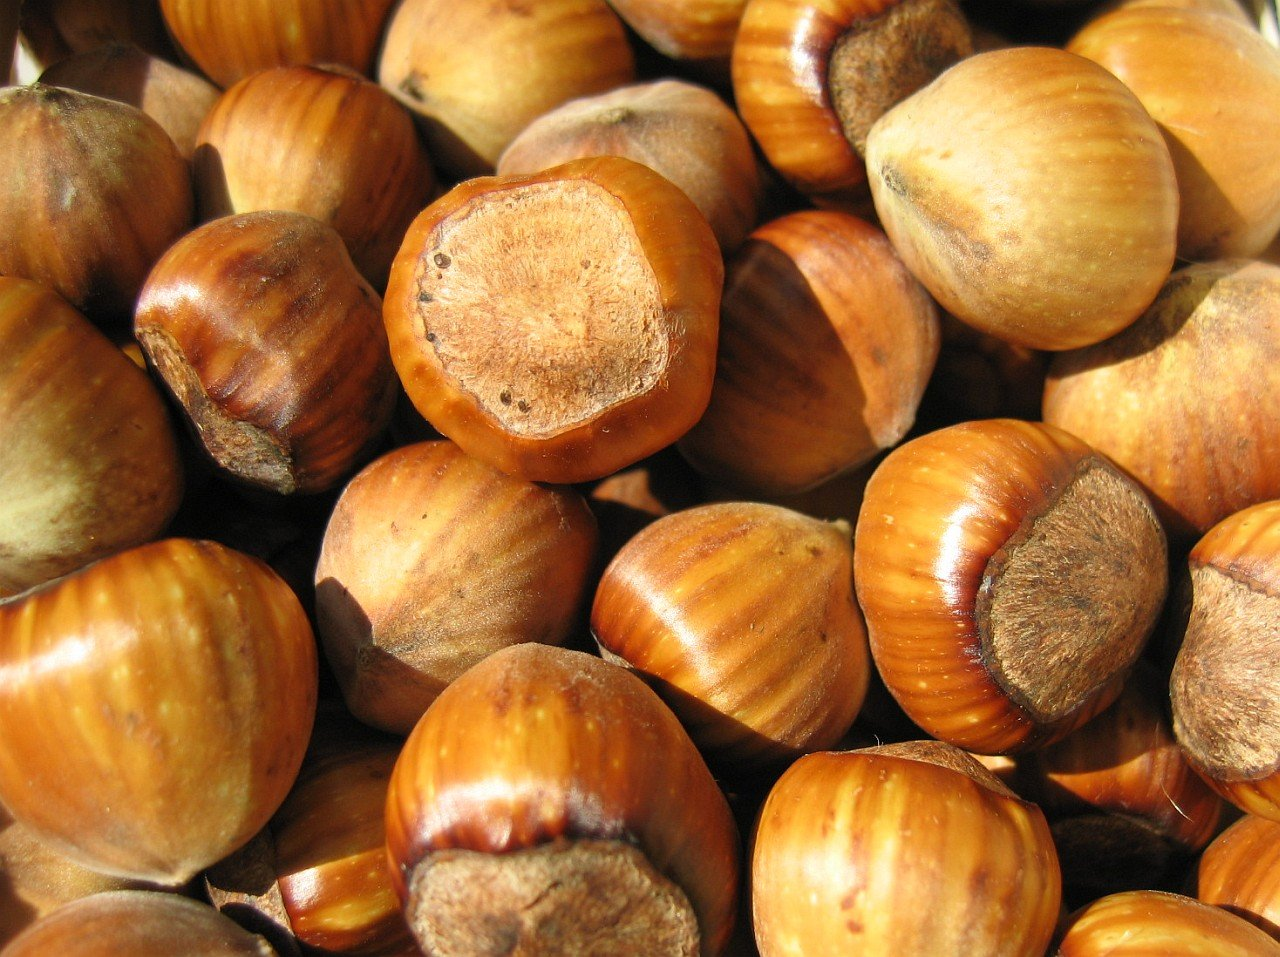 In Shell Filberts (Hazelnuts) - 5 lb. by Treasured Harvest